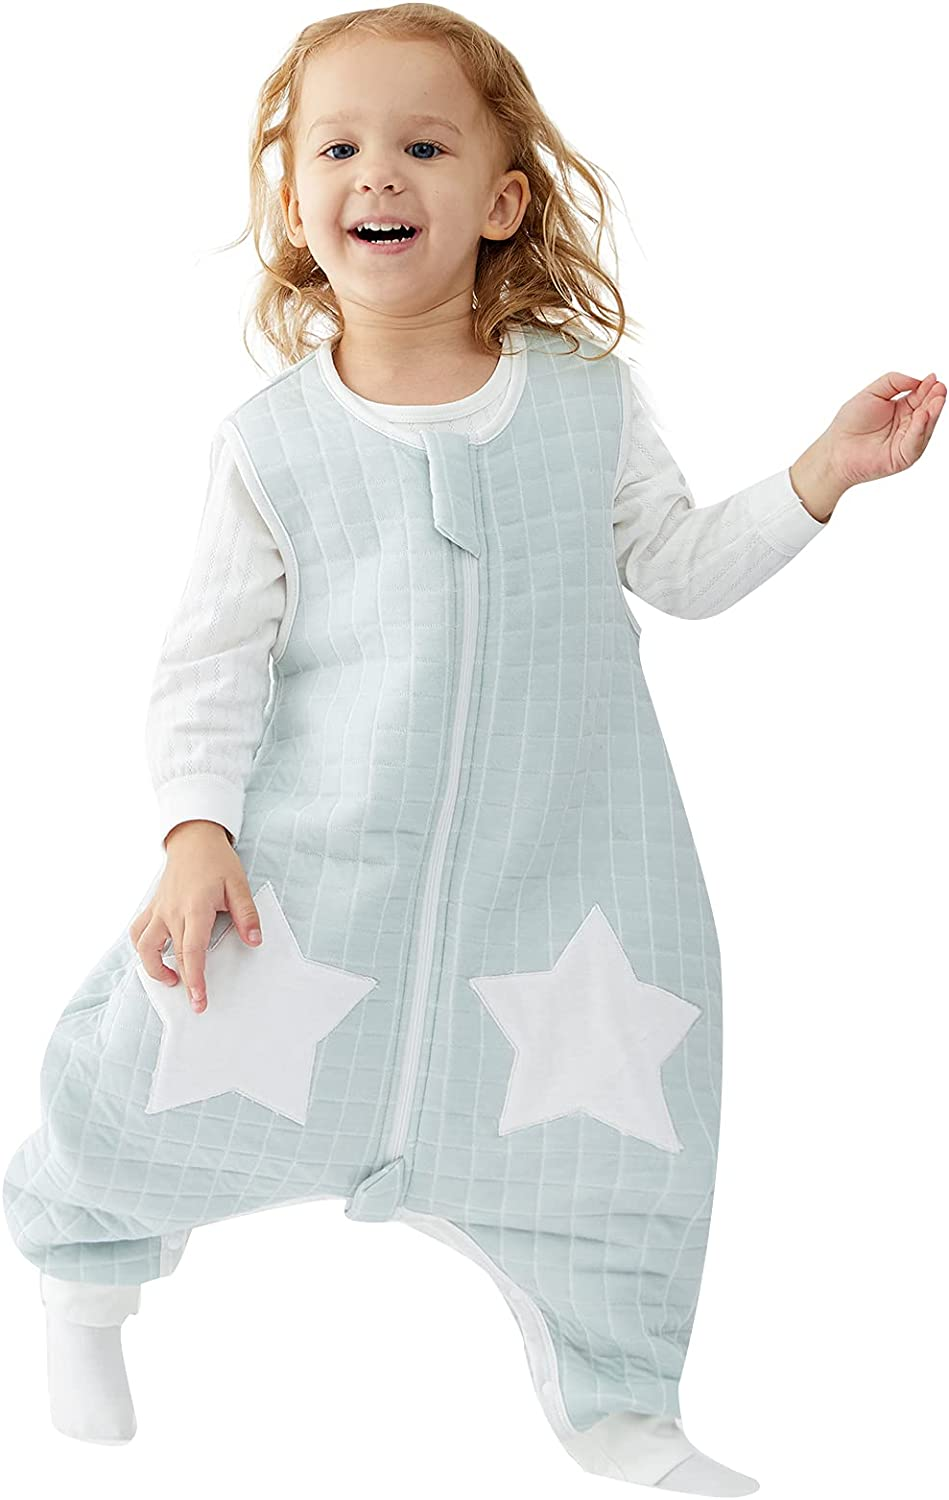 Max 78% OFF Sleep Sack with Feet Sleeveless 100% Cotton Tog 1.5 Free Shipping Cheap Bargain Gift